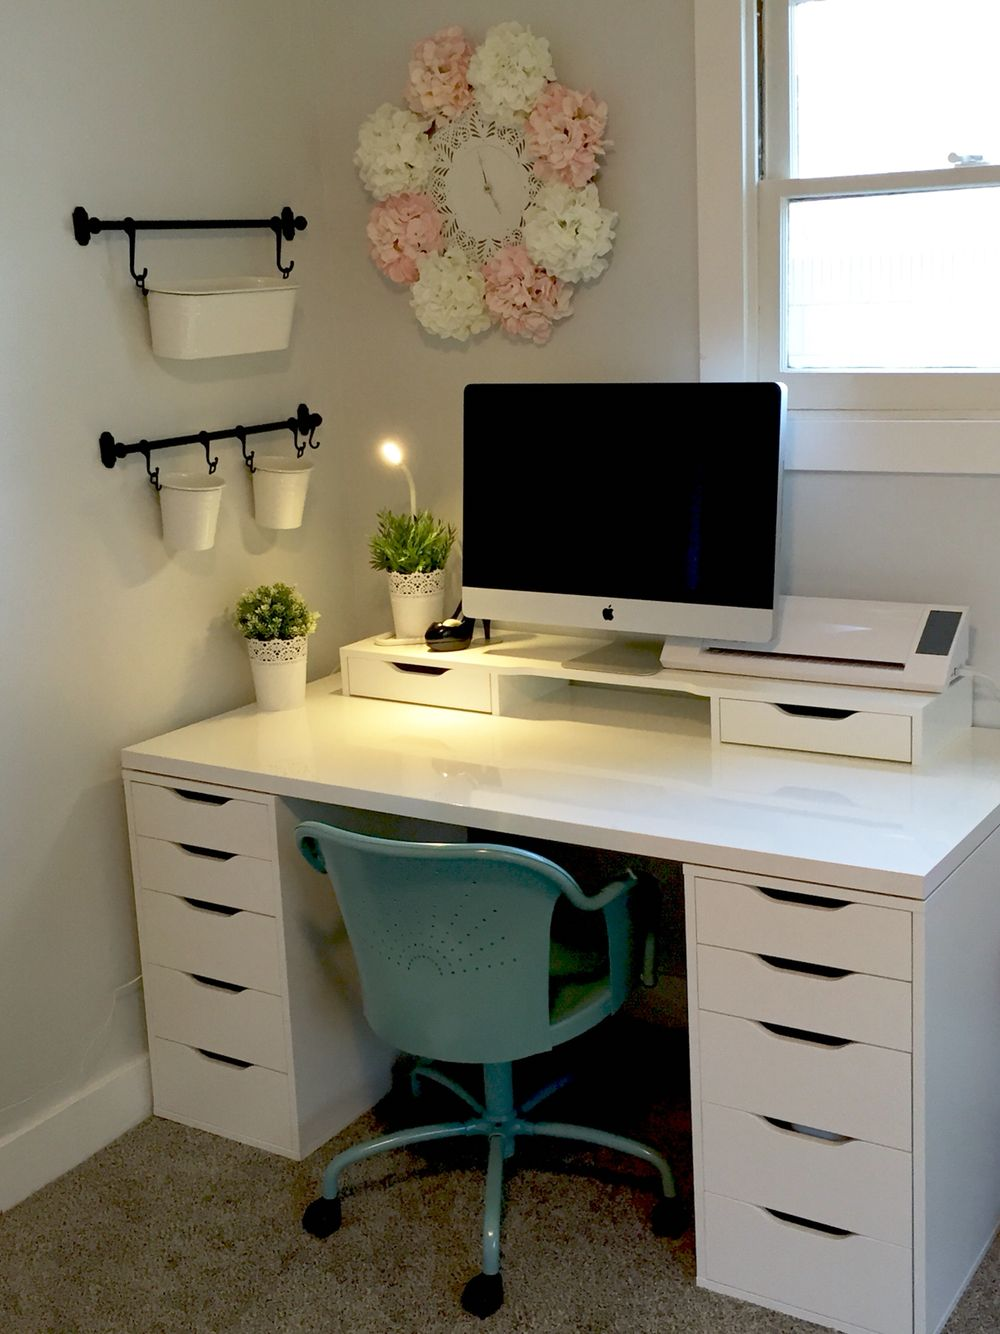 The 25 best ikea alex desk ideas on pinterest white - Ikea desk drawer organizer ...